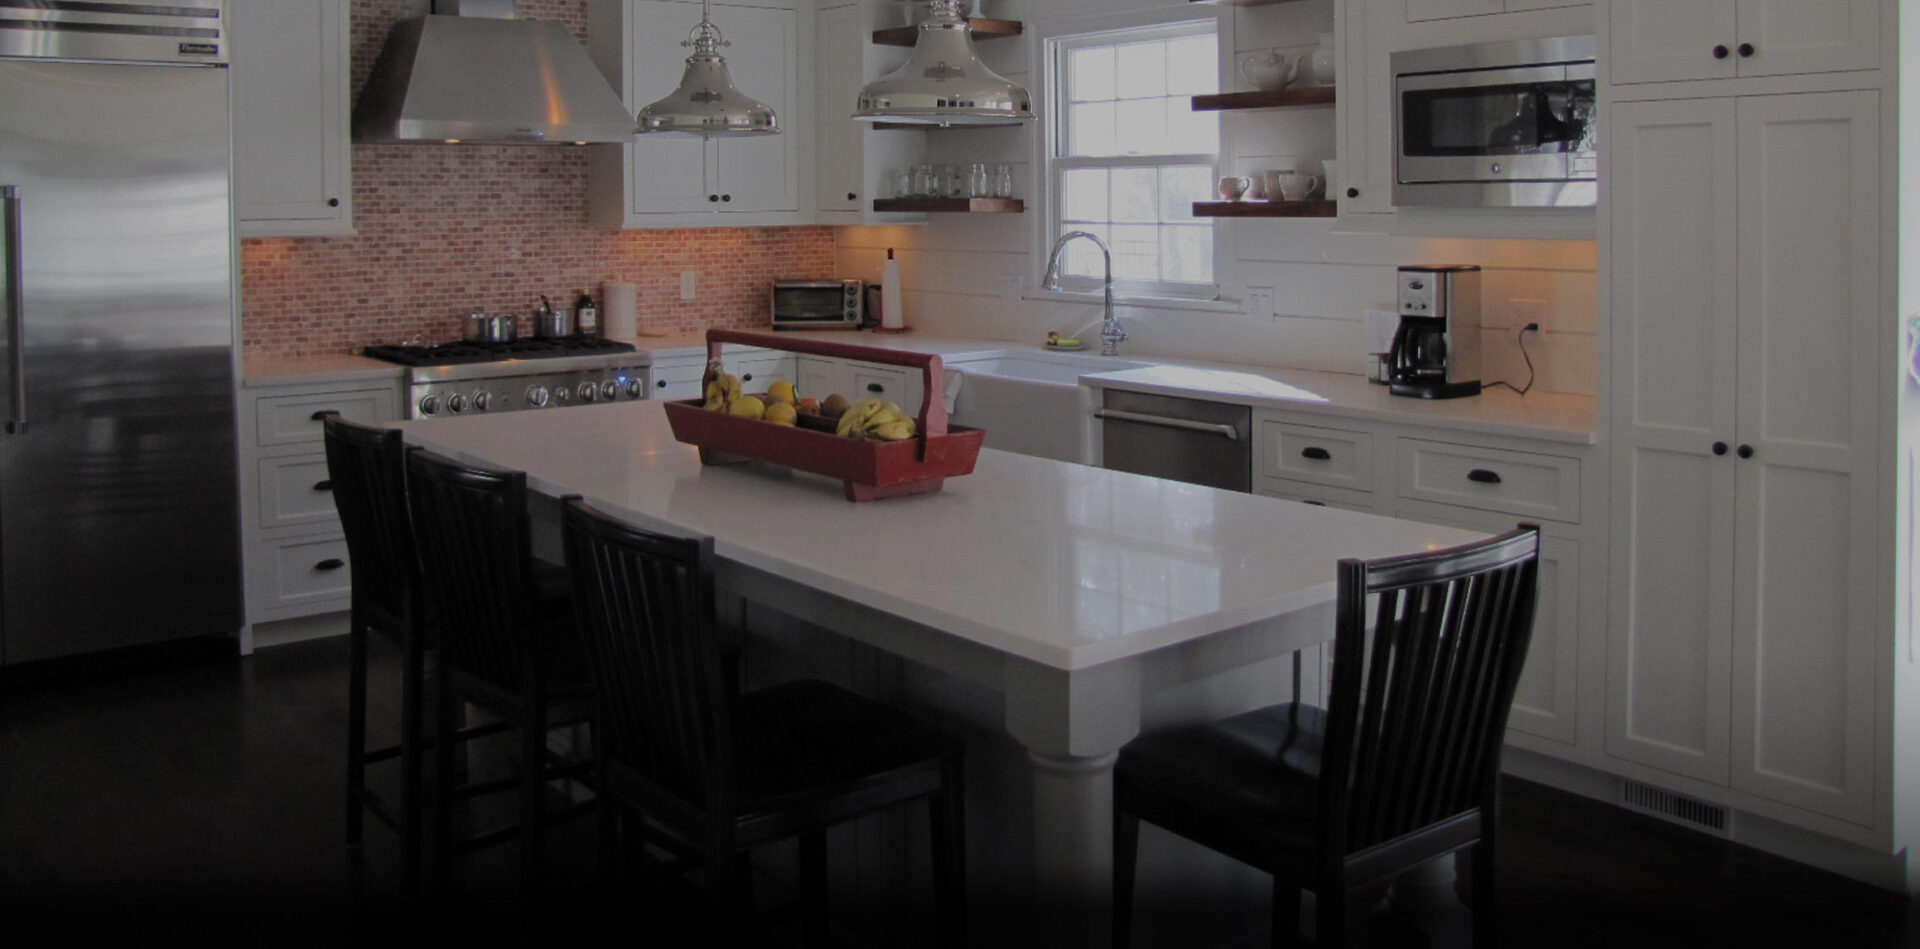 Kitchen Cabinetry Remodeling In Fairfield County Ct